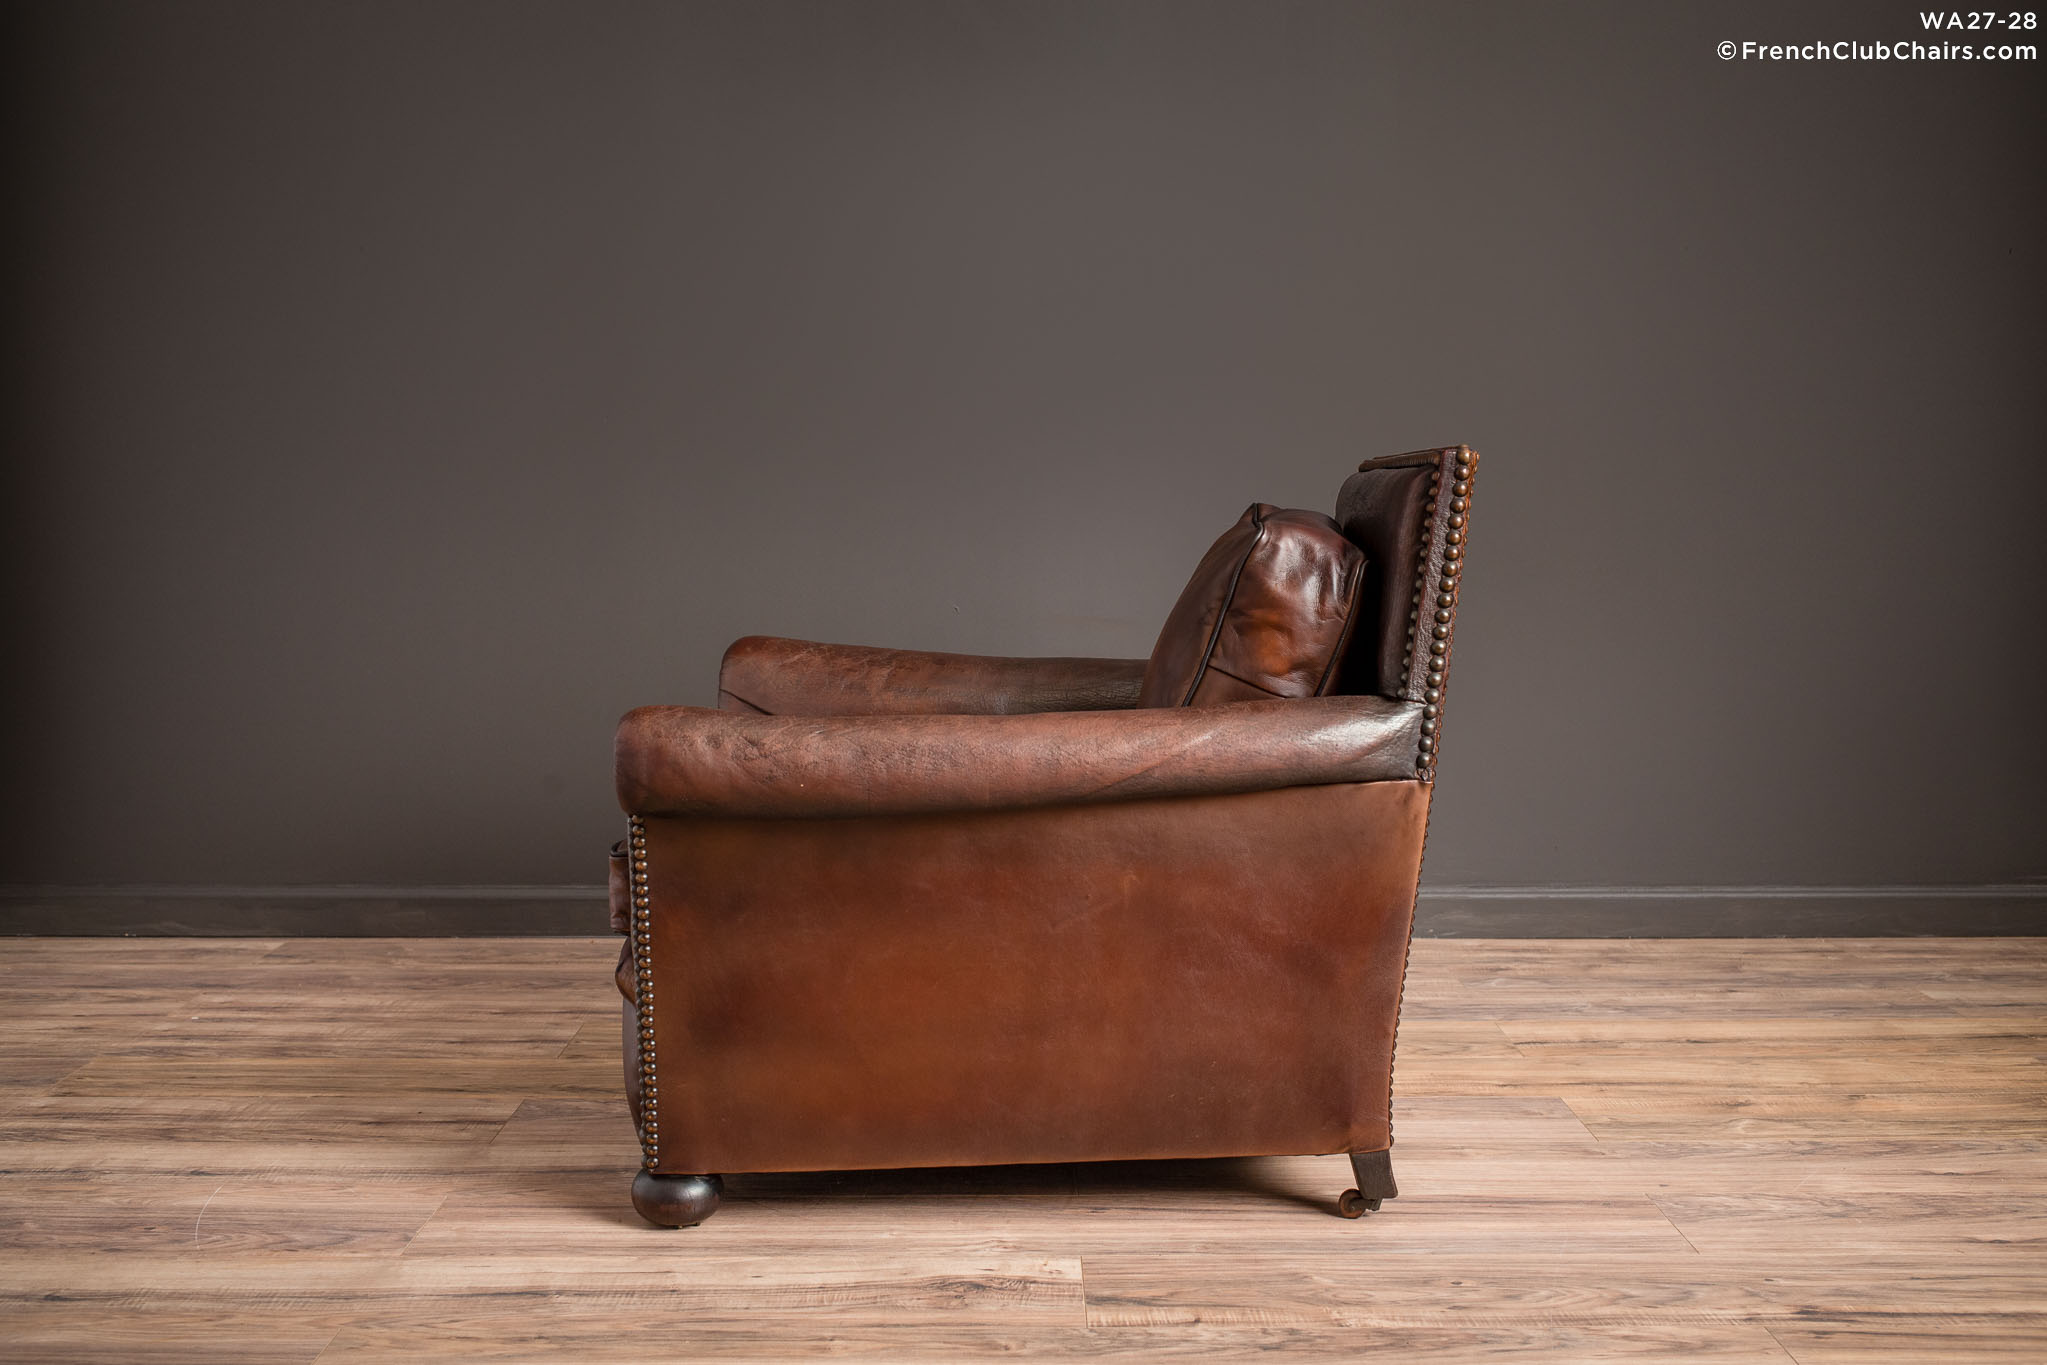 WA_27-28_Executive_Nailed_Dark_Solo_R_4LT-v01-williams-antiks-leather-french-club-chair-wa_fcccom